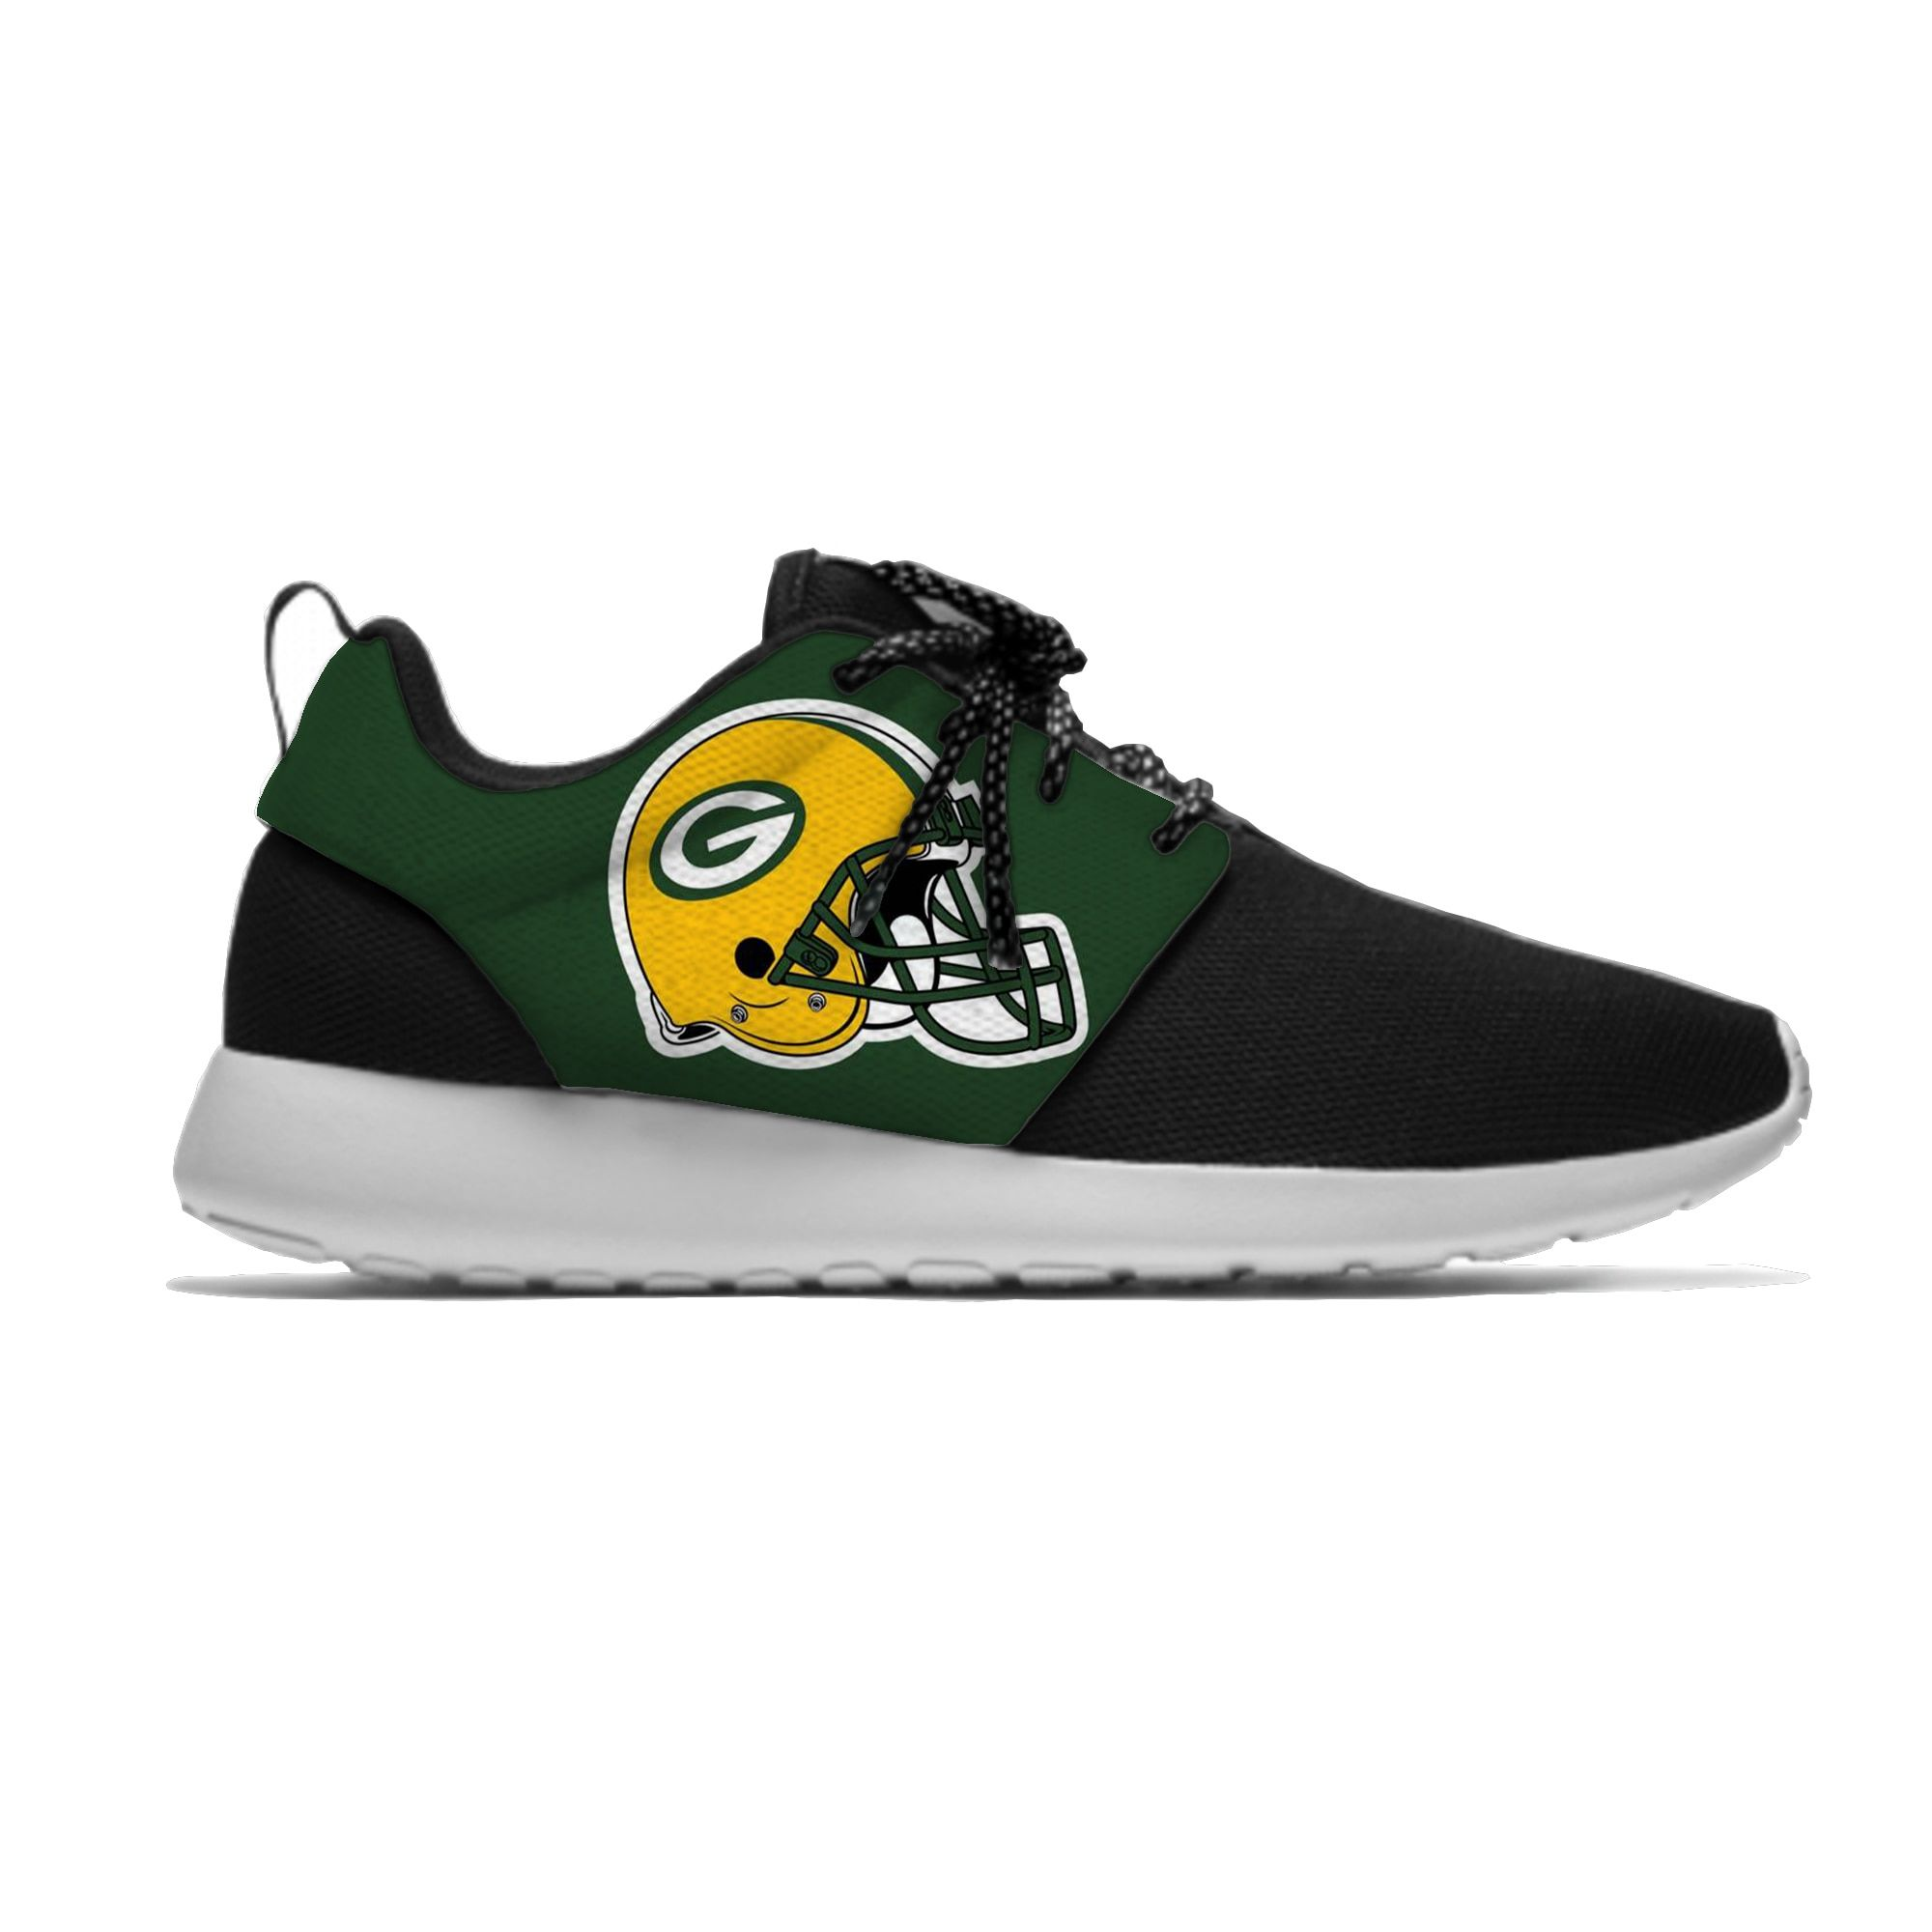 Green Bay Packers Lightweight Sneakers Packers Running Shoes Nfl Green Bay Packers Sh Green Bay Packers Green Bay Packers Shoes Green Bay Packers Merchandise